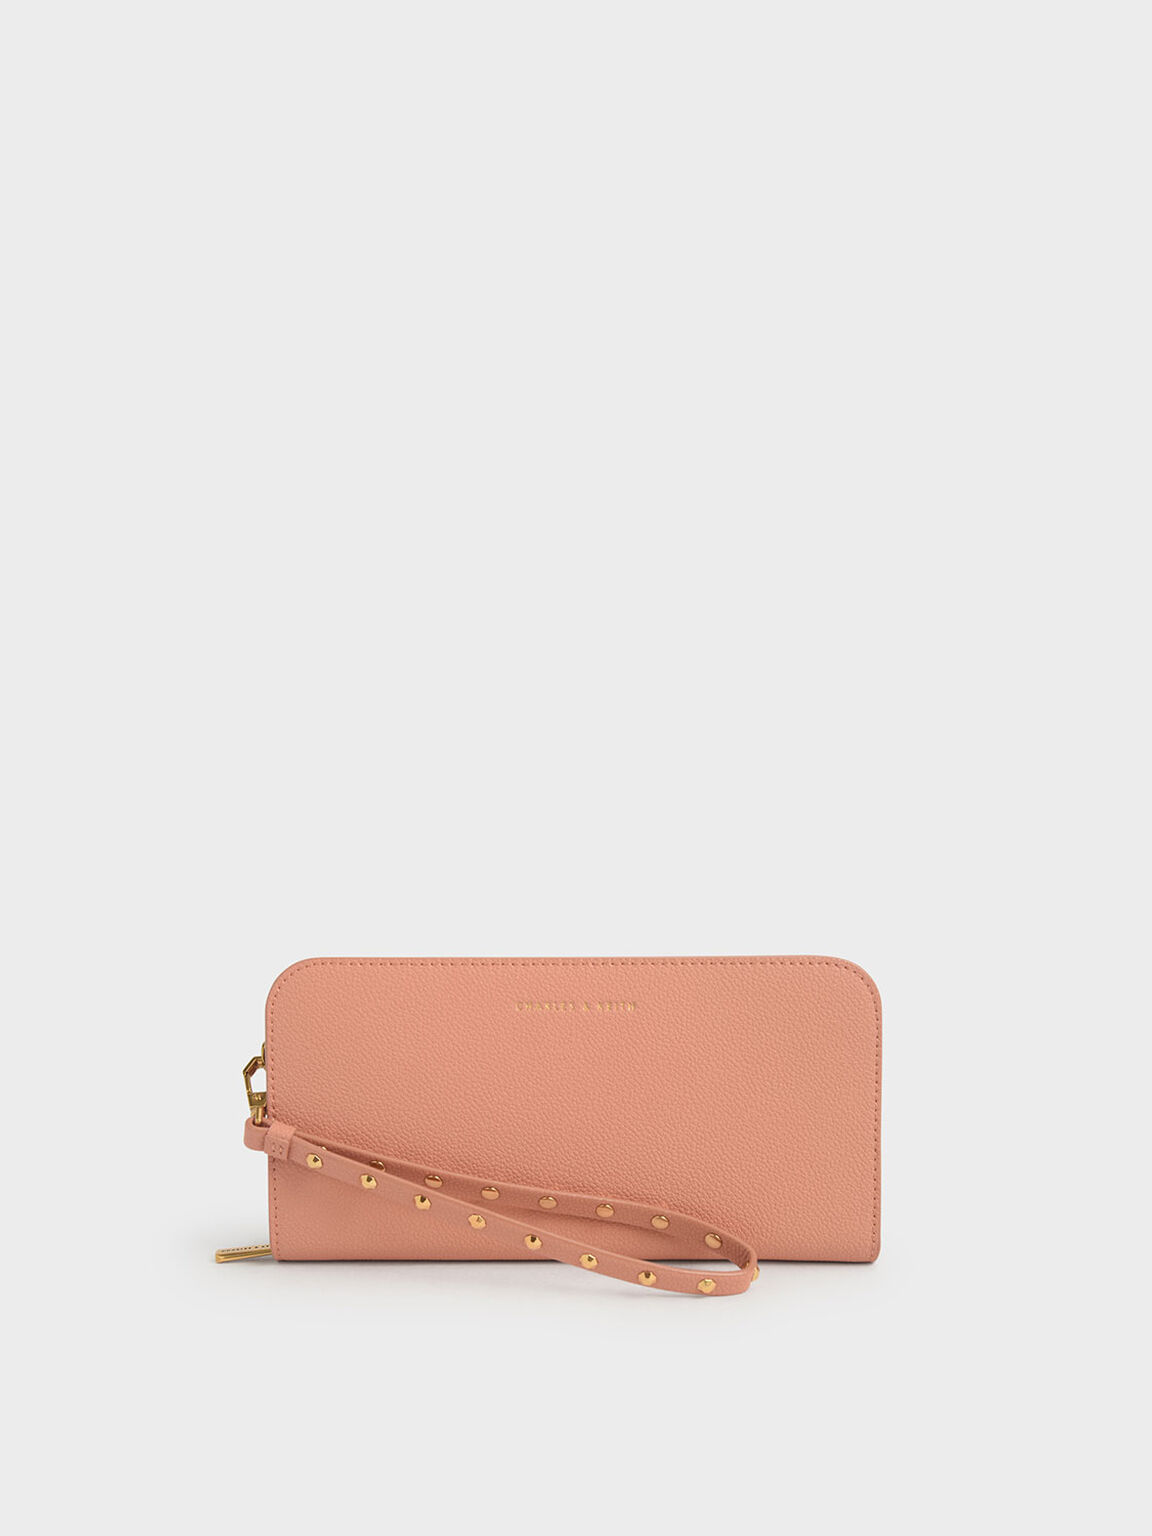 Long Wristlet Wallet, Peach, hi-res